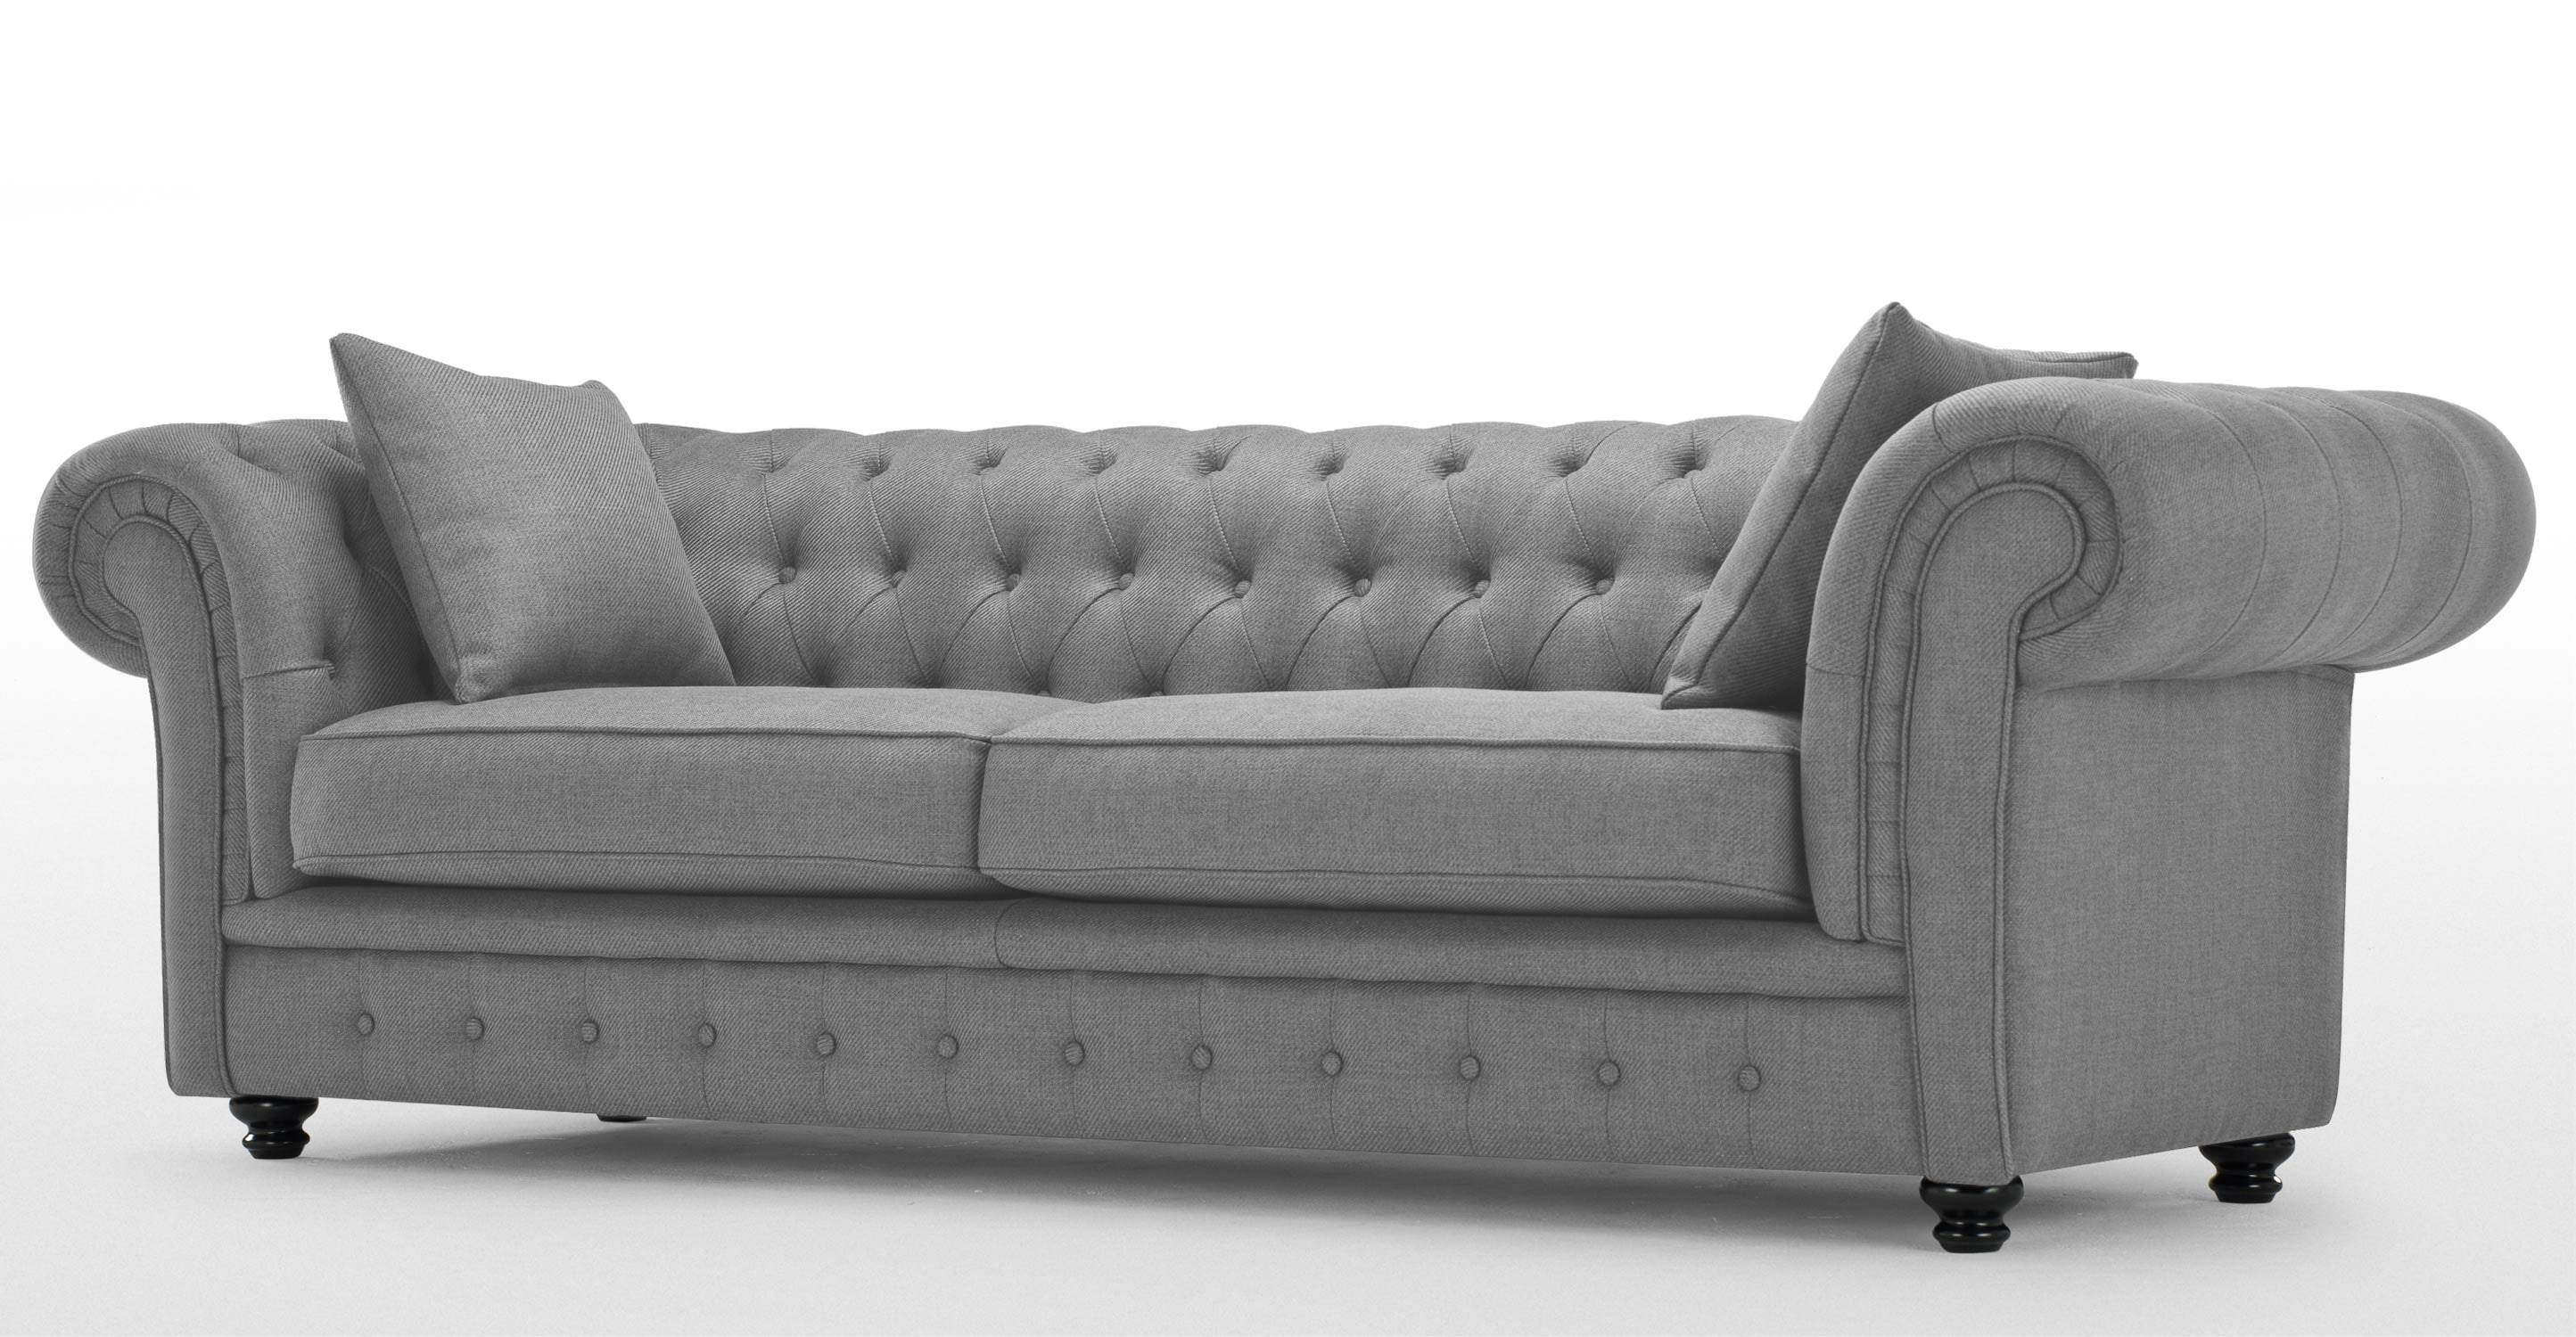 Branagh 3 Seater Grey Chesterfield Sofa | Made throughout Chesterfield Furniture (Image 8 of 30)